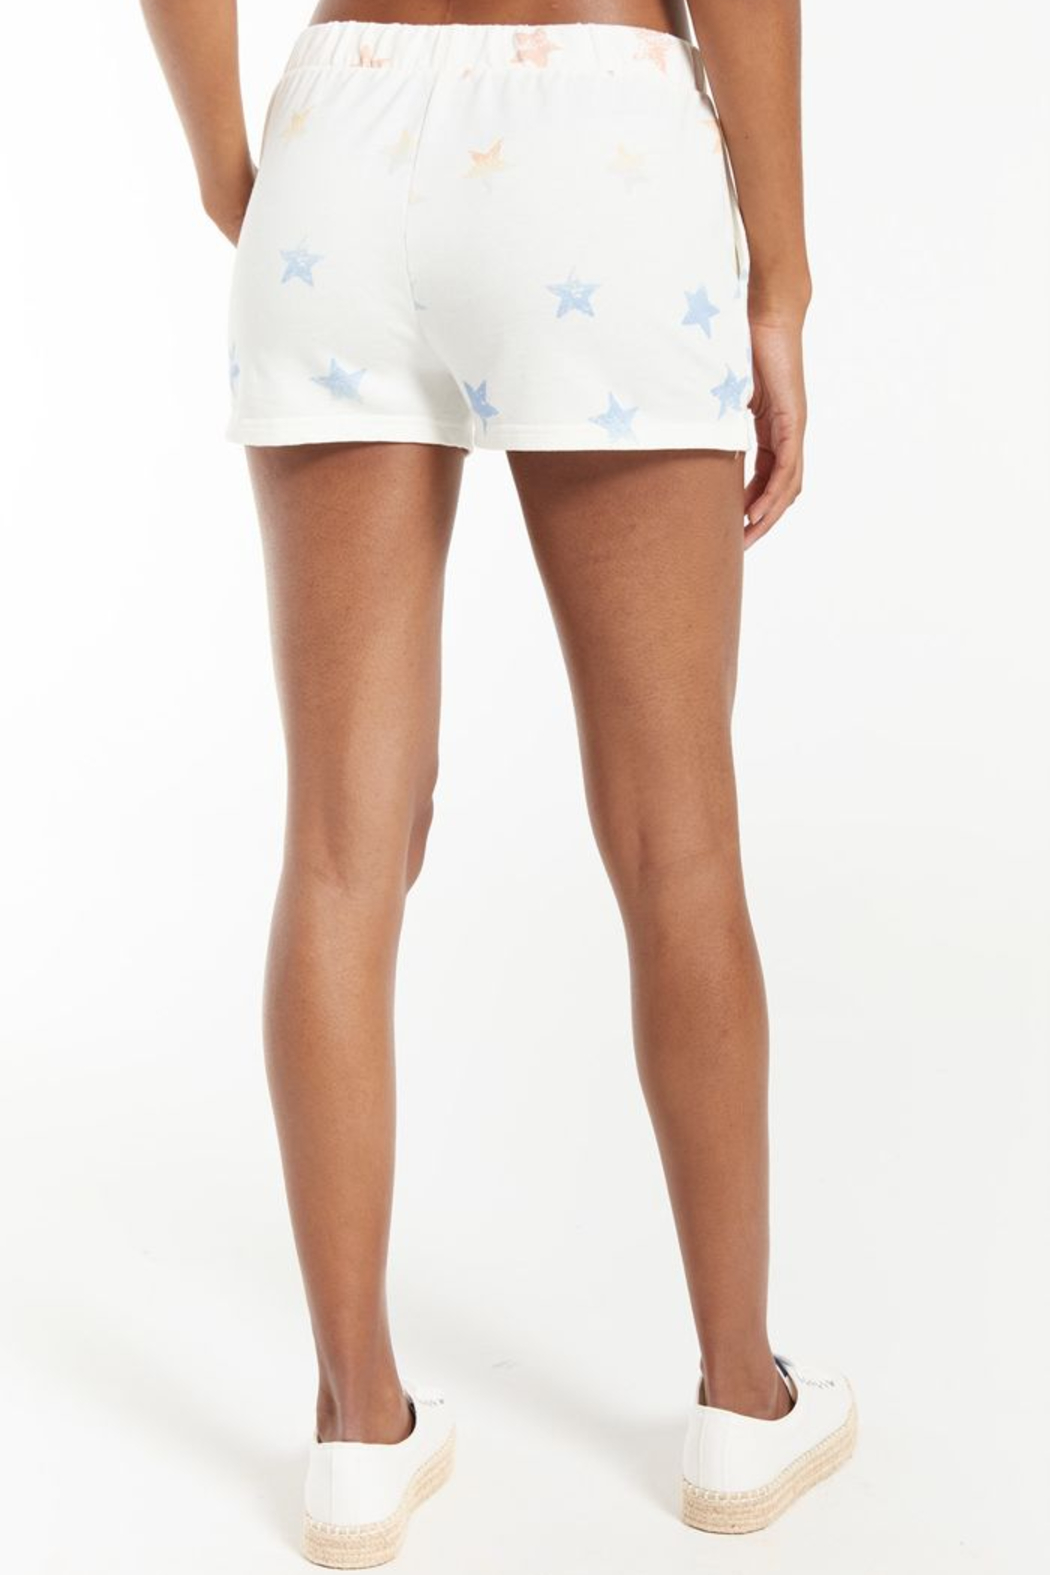 z supply Arlie Rainbow Star Short - Side Cropped Image